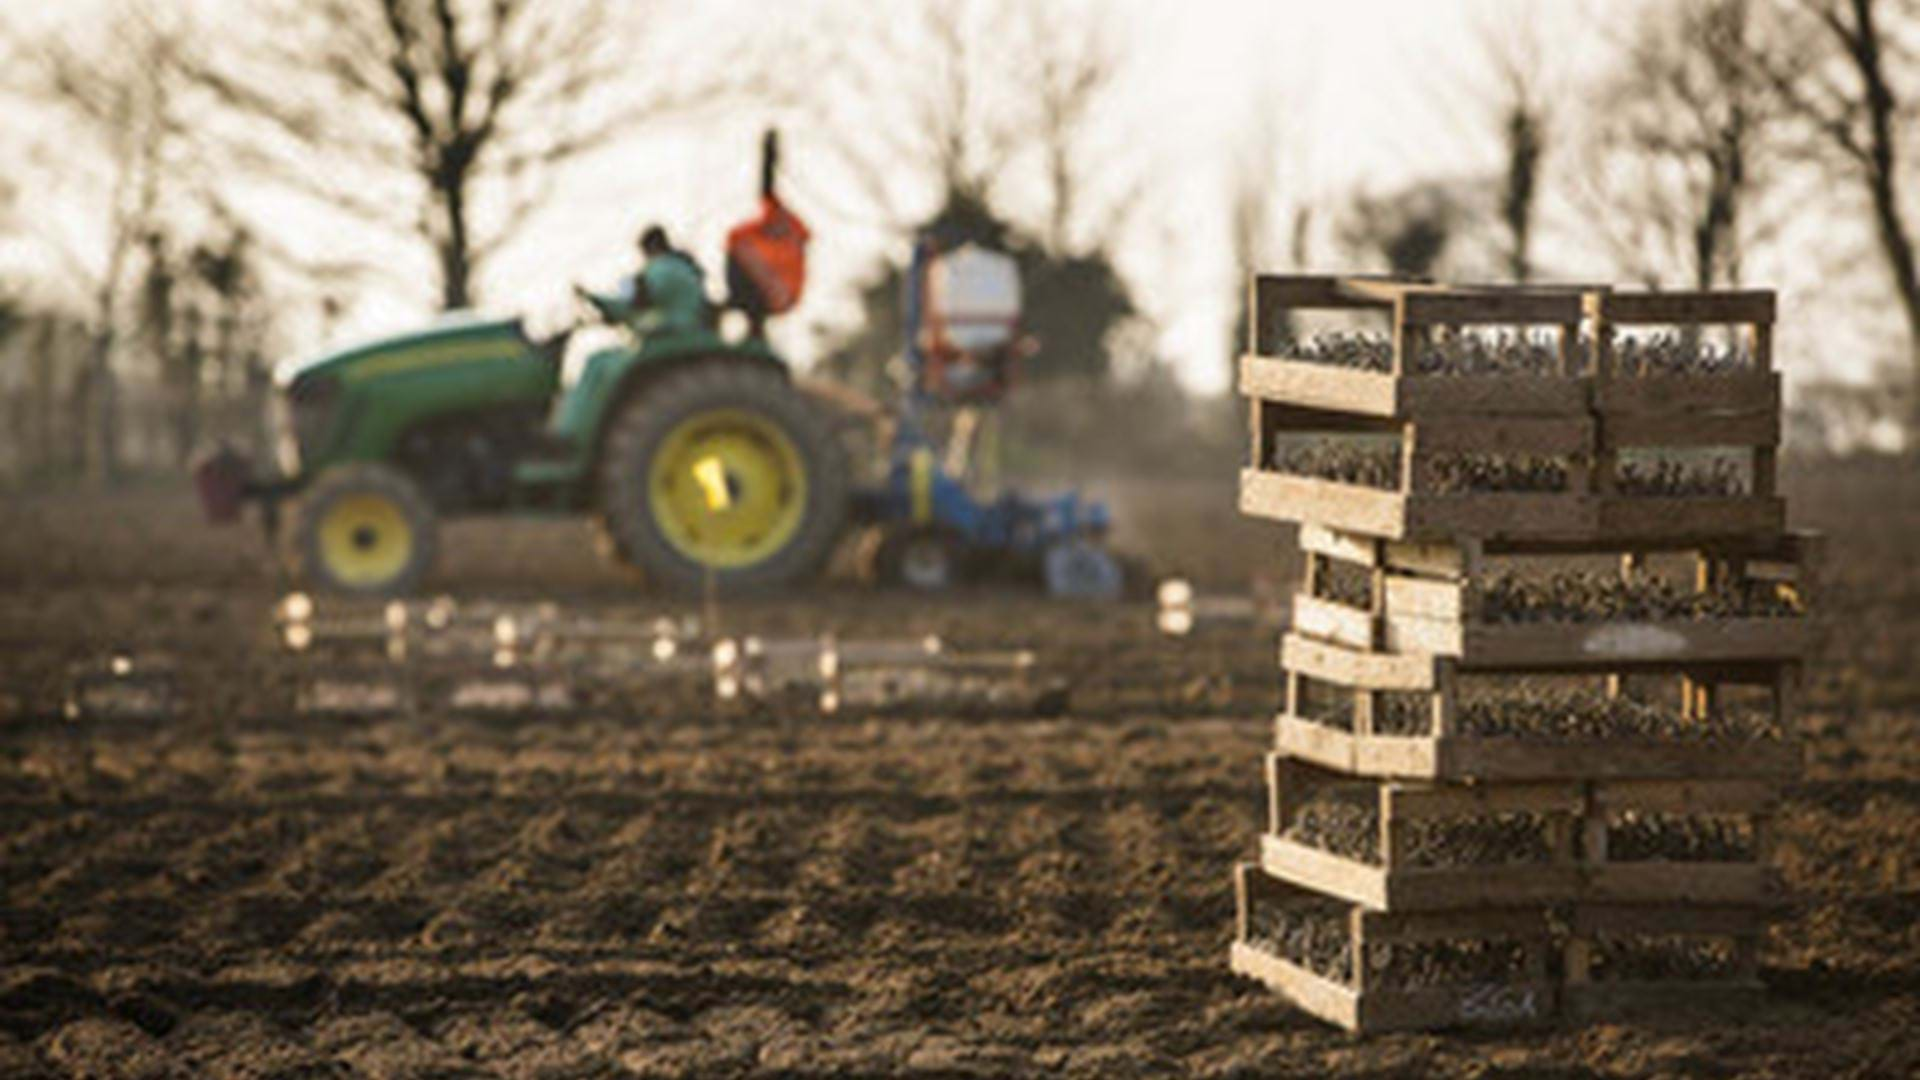 tractors-ploughing-jersey-royal-potatoes-channel-islands